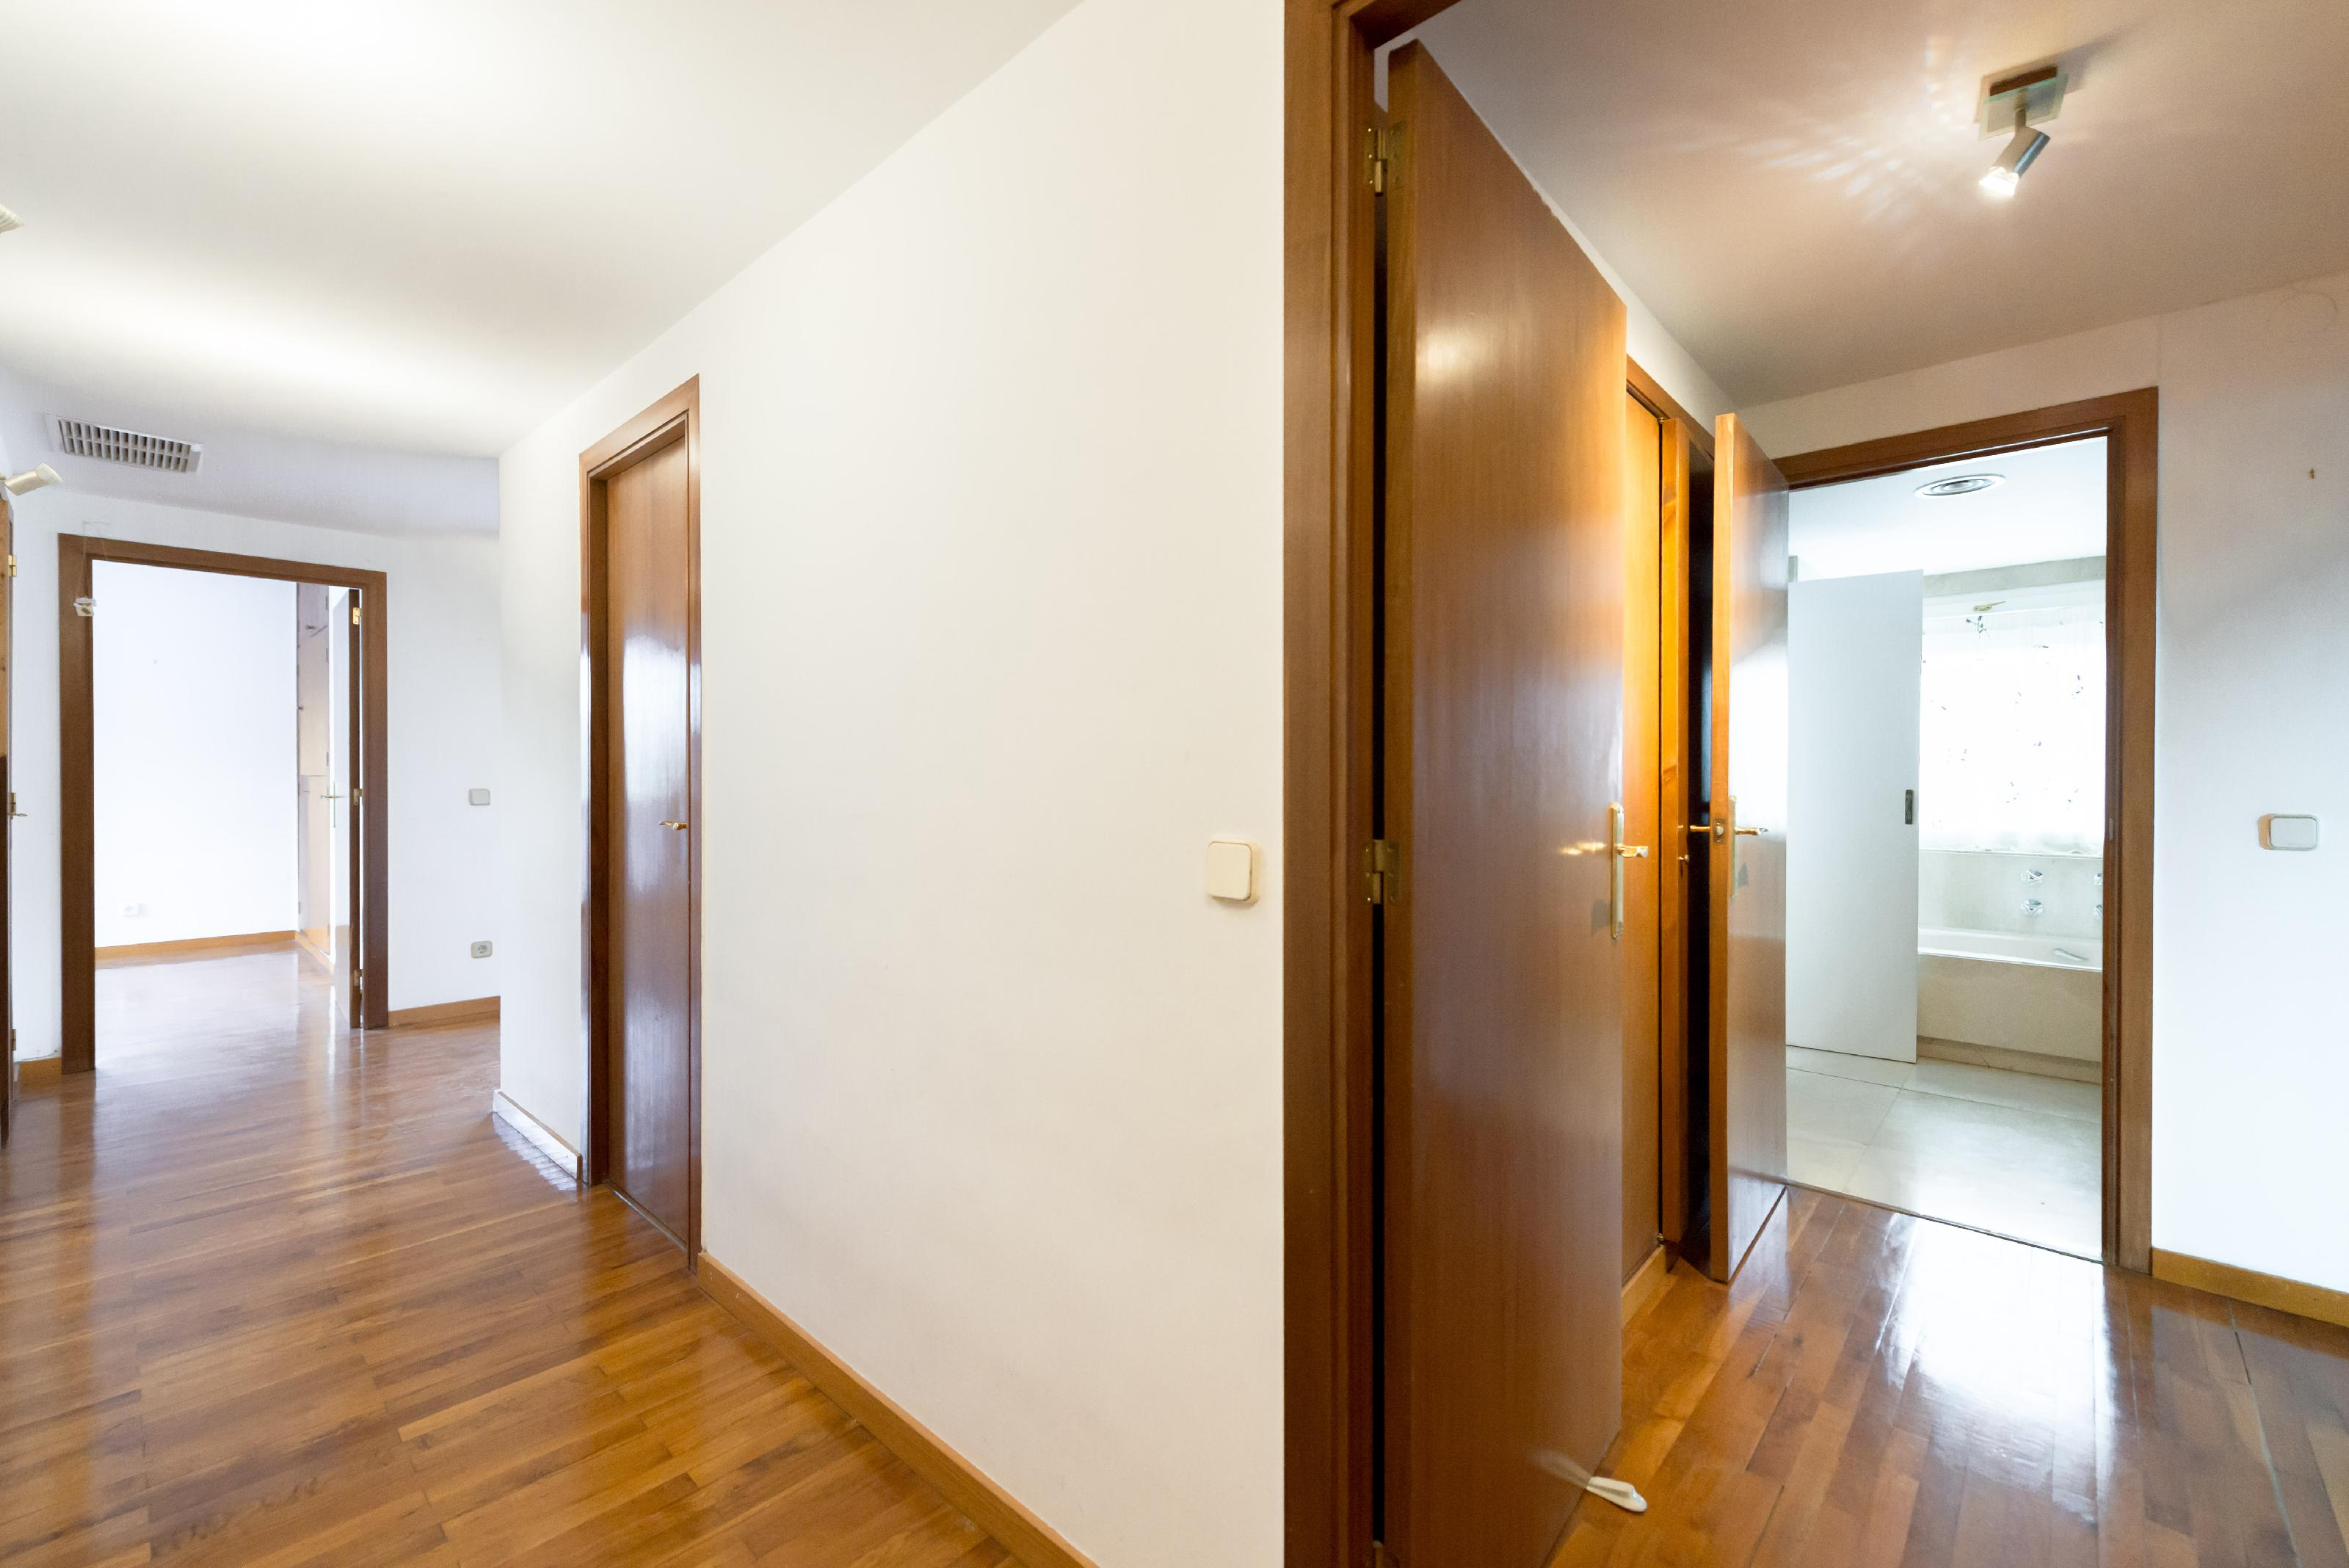 245495 Penthouse for sale in Les Corts, Pedralbes 21